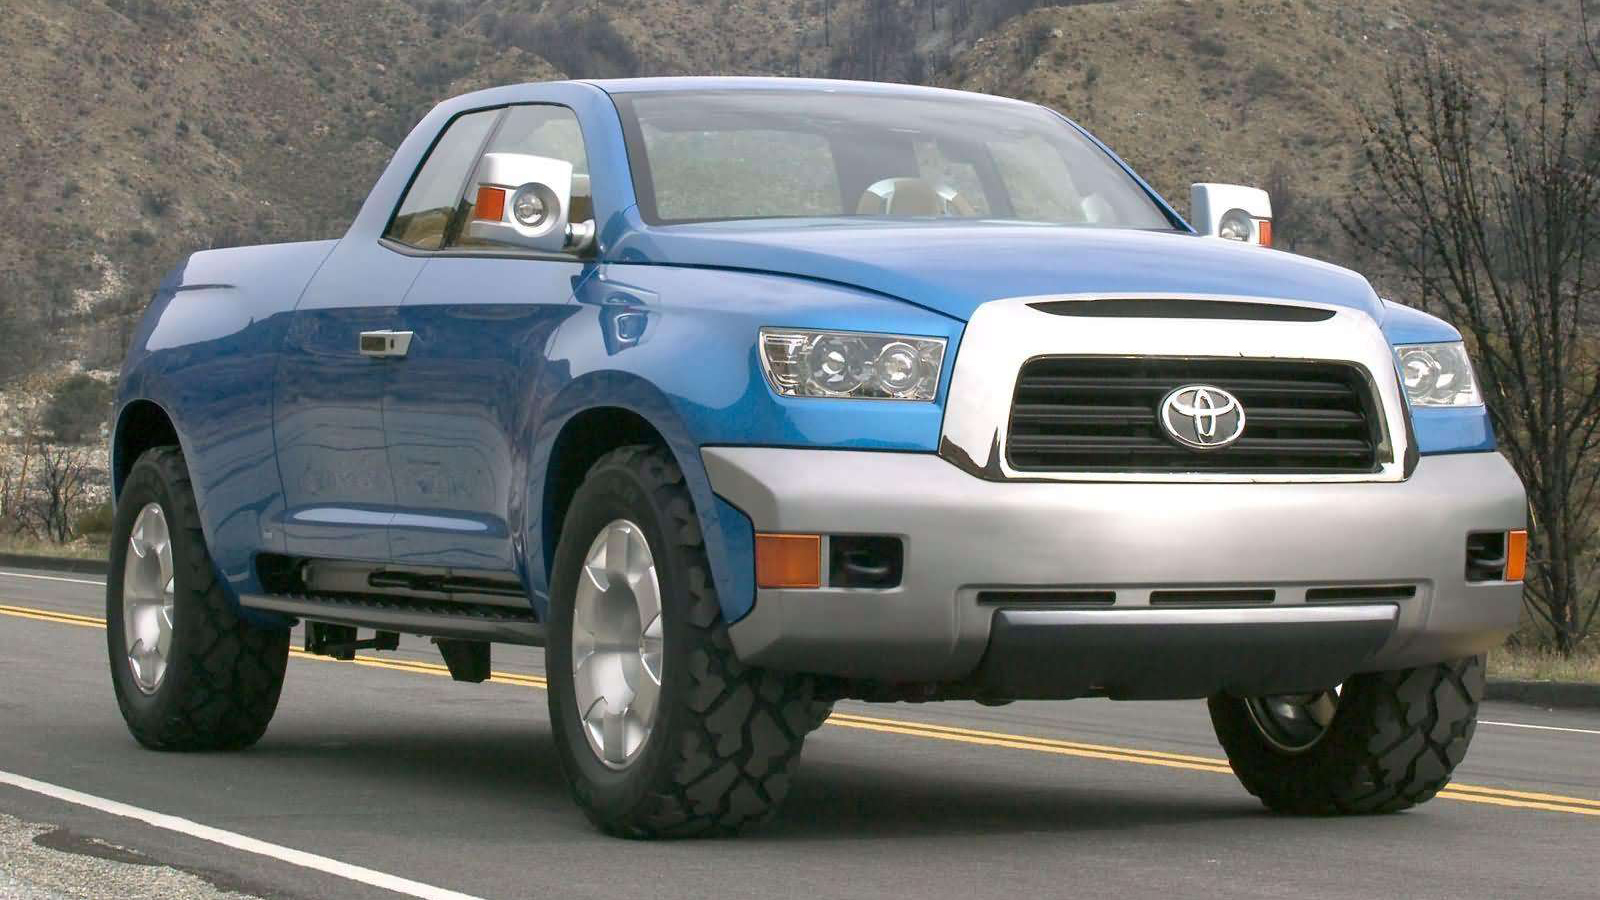 New 2015 Toyota Hilux Preview @ FTX Concept